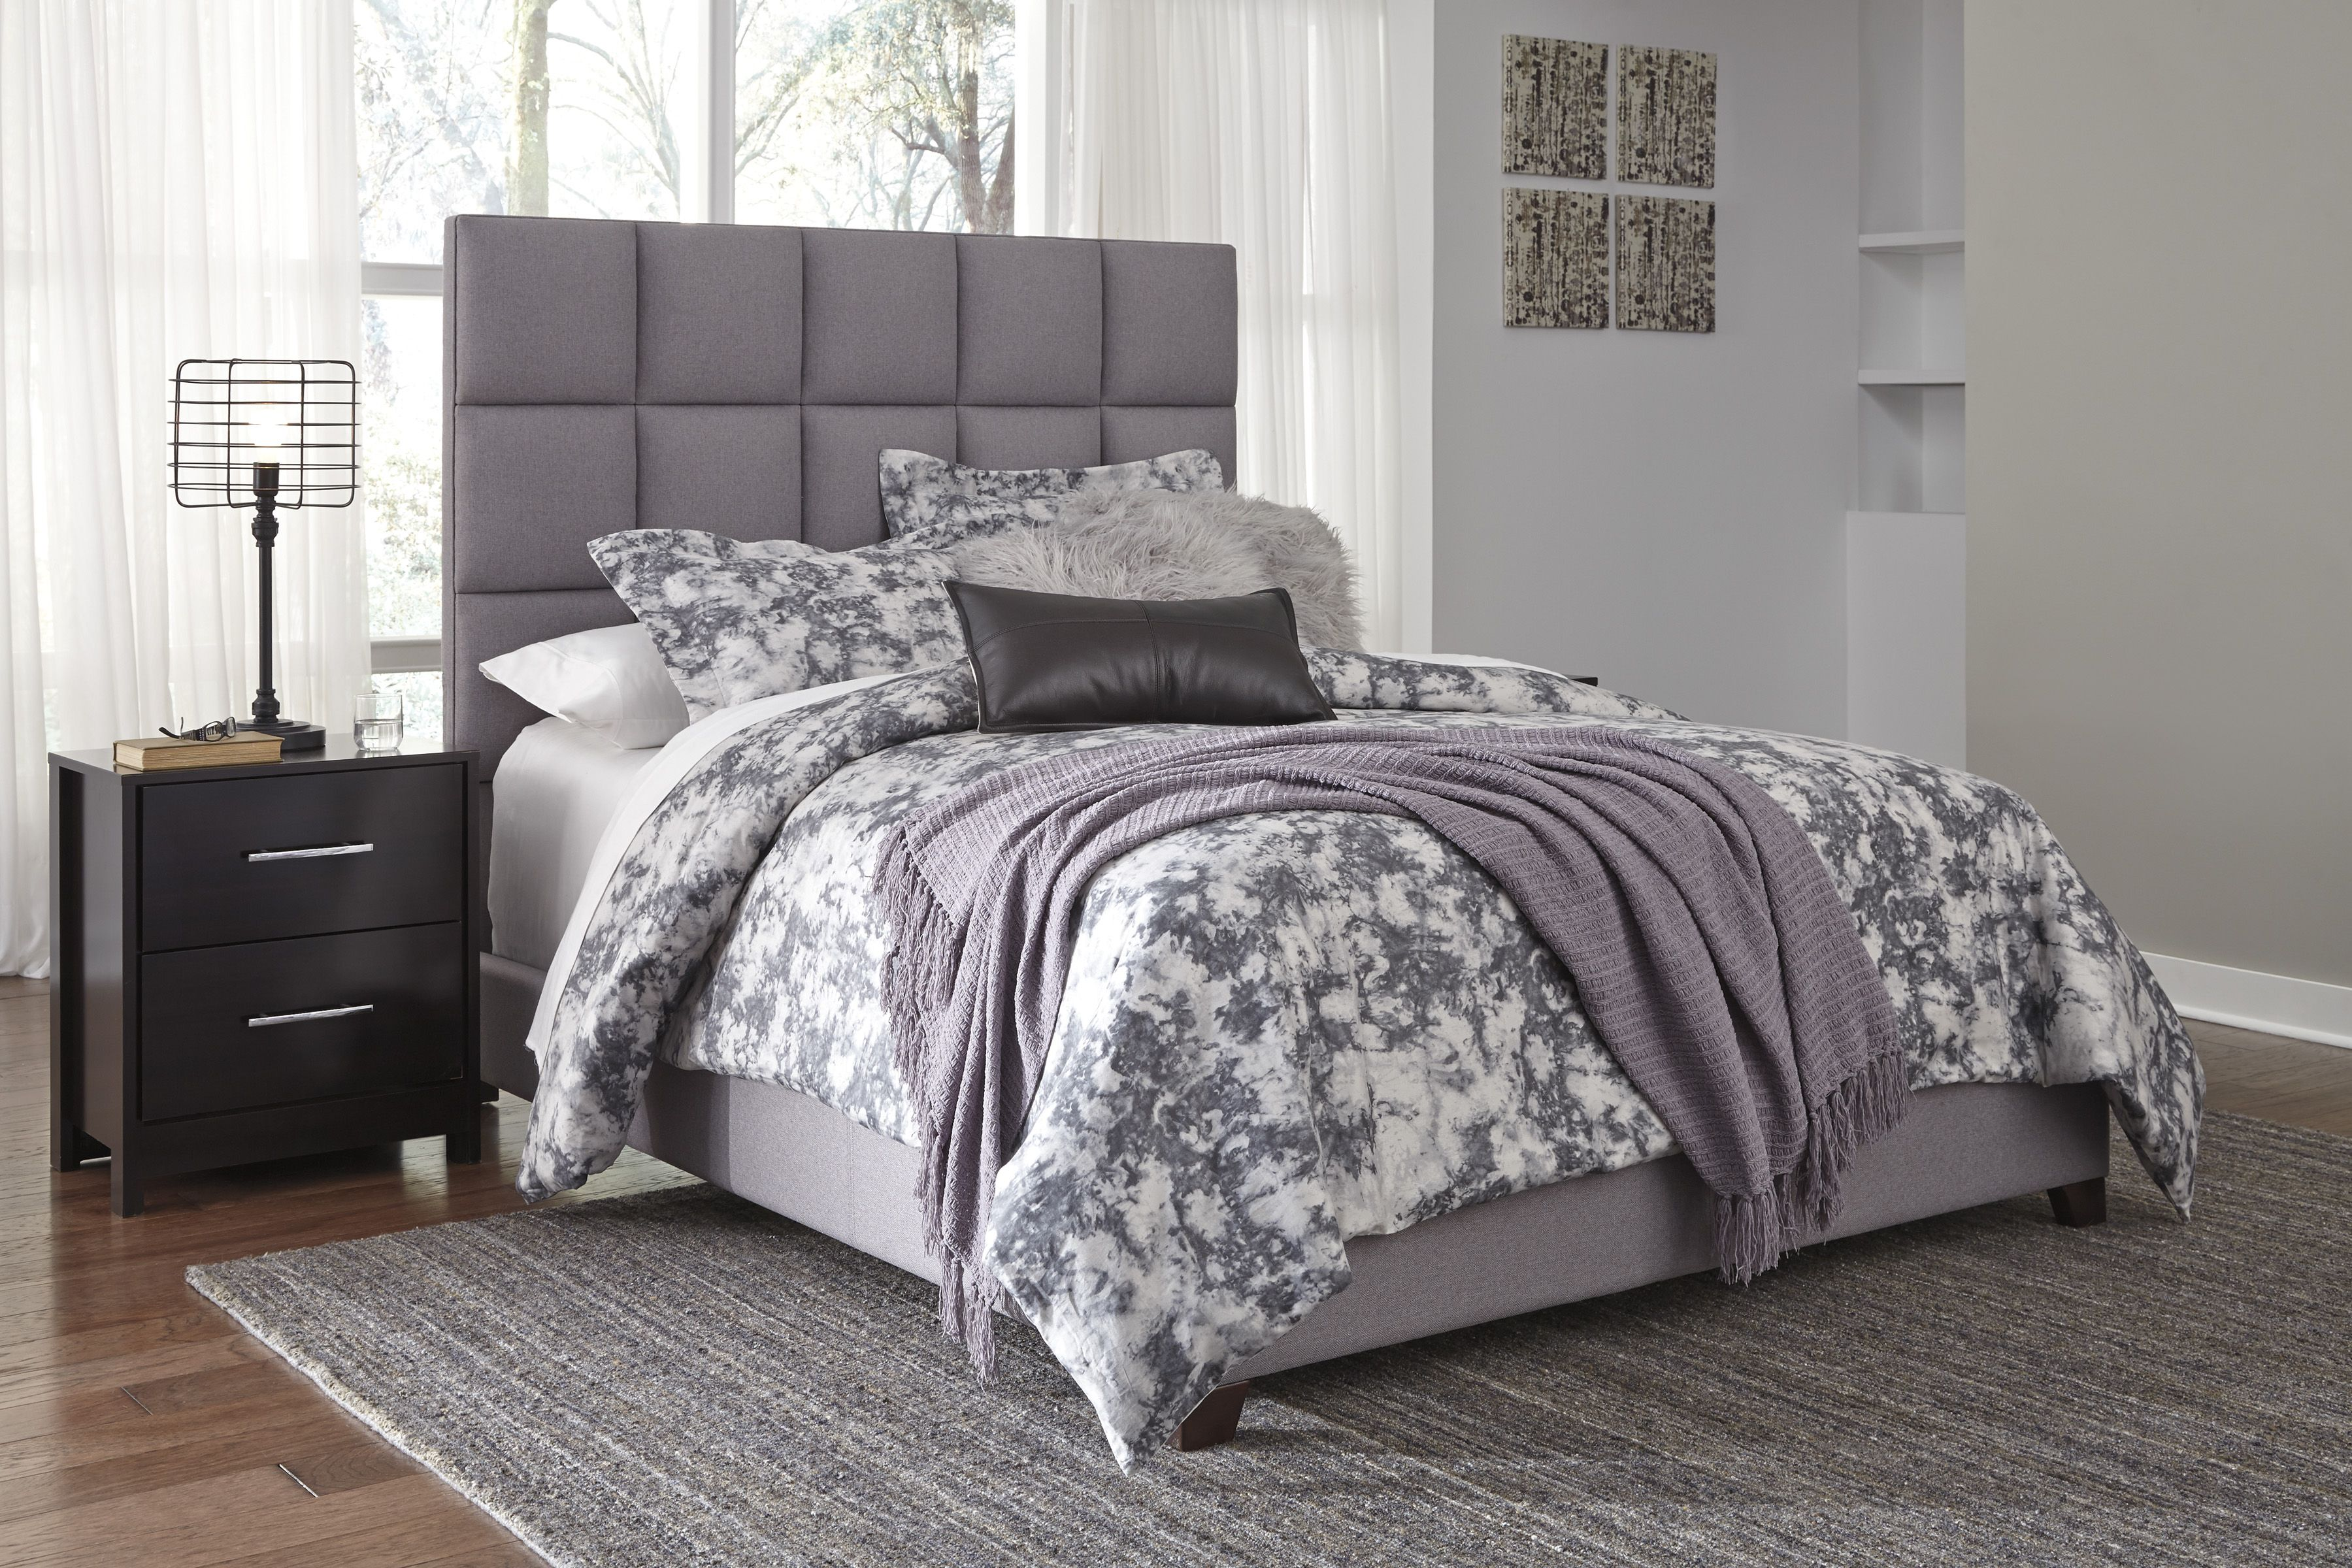 Dolante Gray Queen Upholstered Bed King upholstered bed